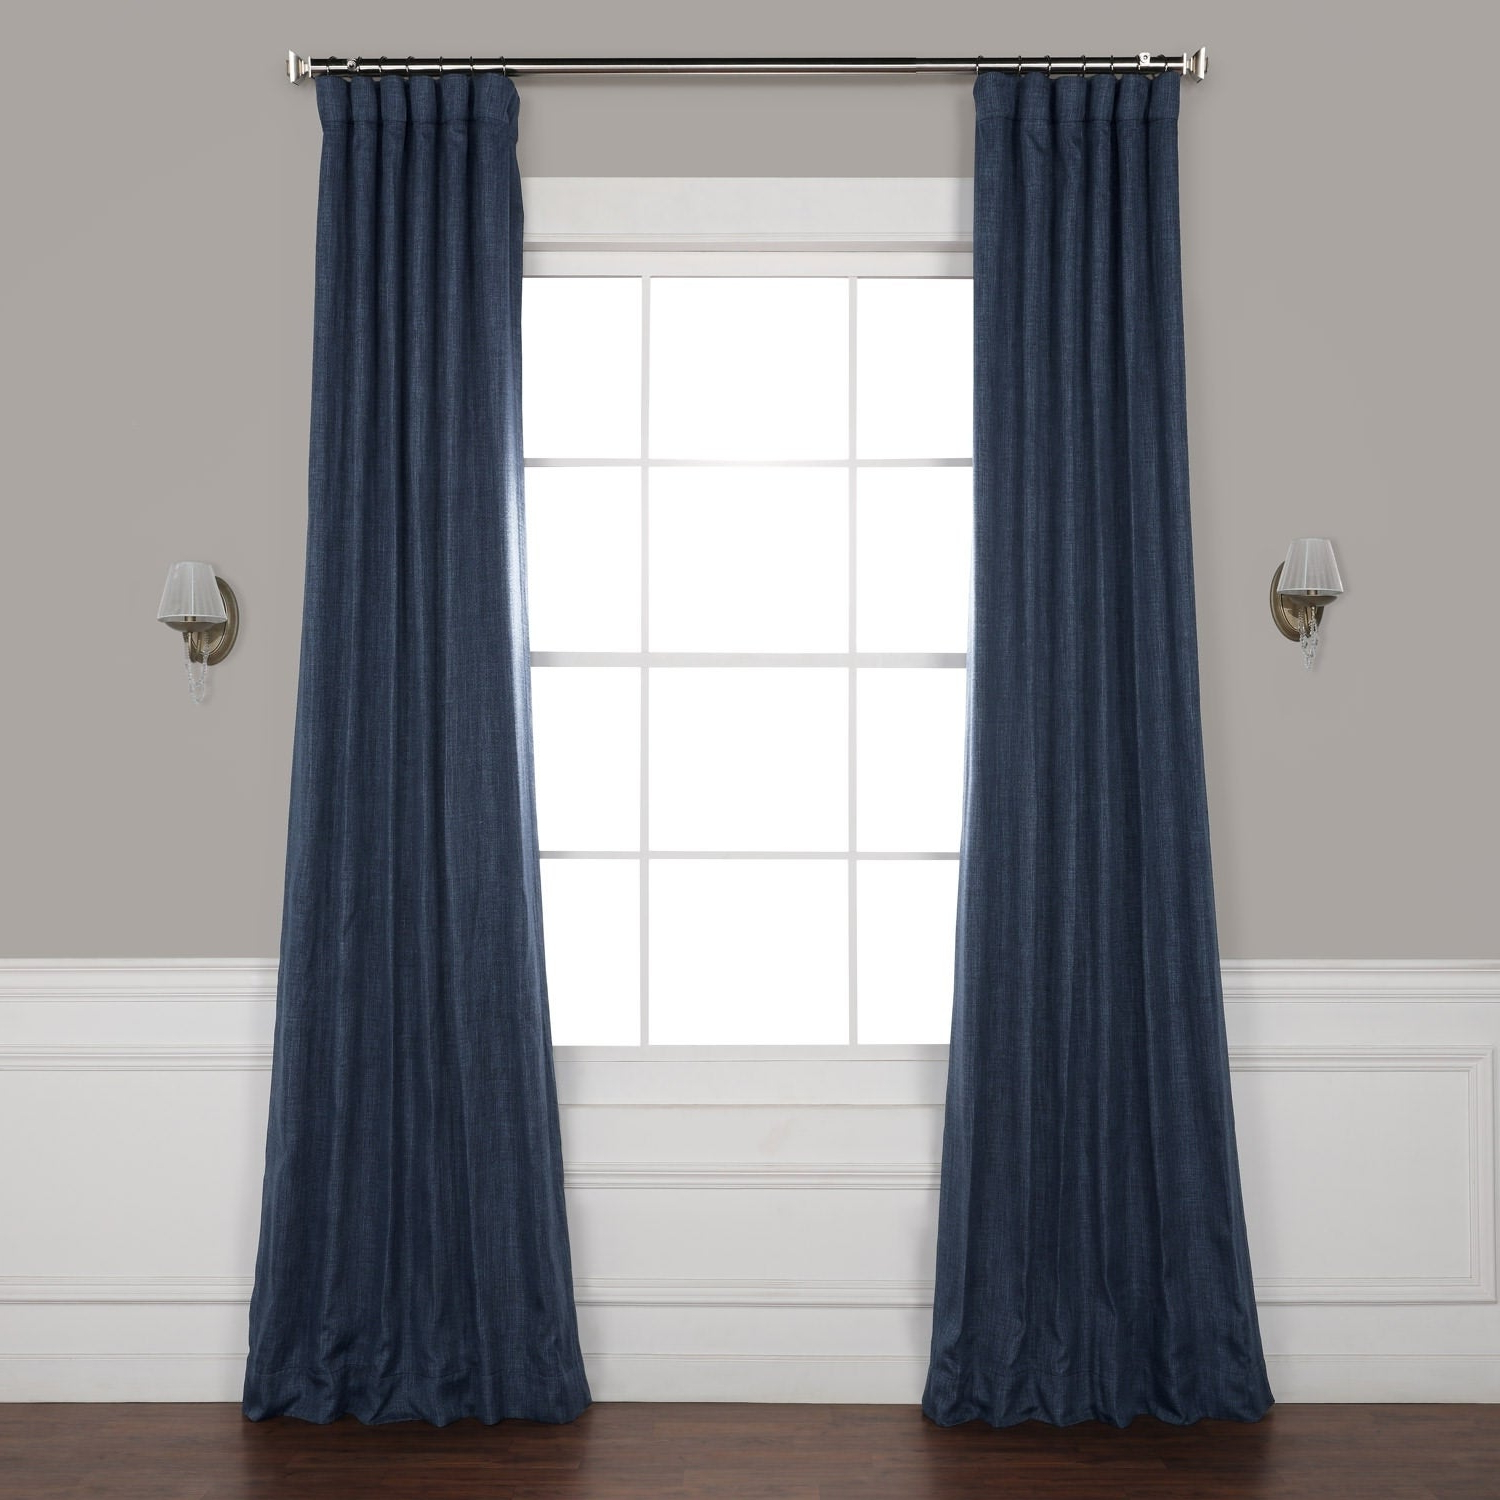 Trendy Exclusive Fabrics Faux Linen Blackout Curtain Intended For Faux Linen Extra Wide Blackout Curtains (View 19 of 21)